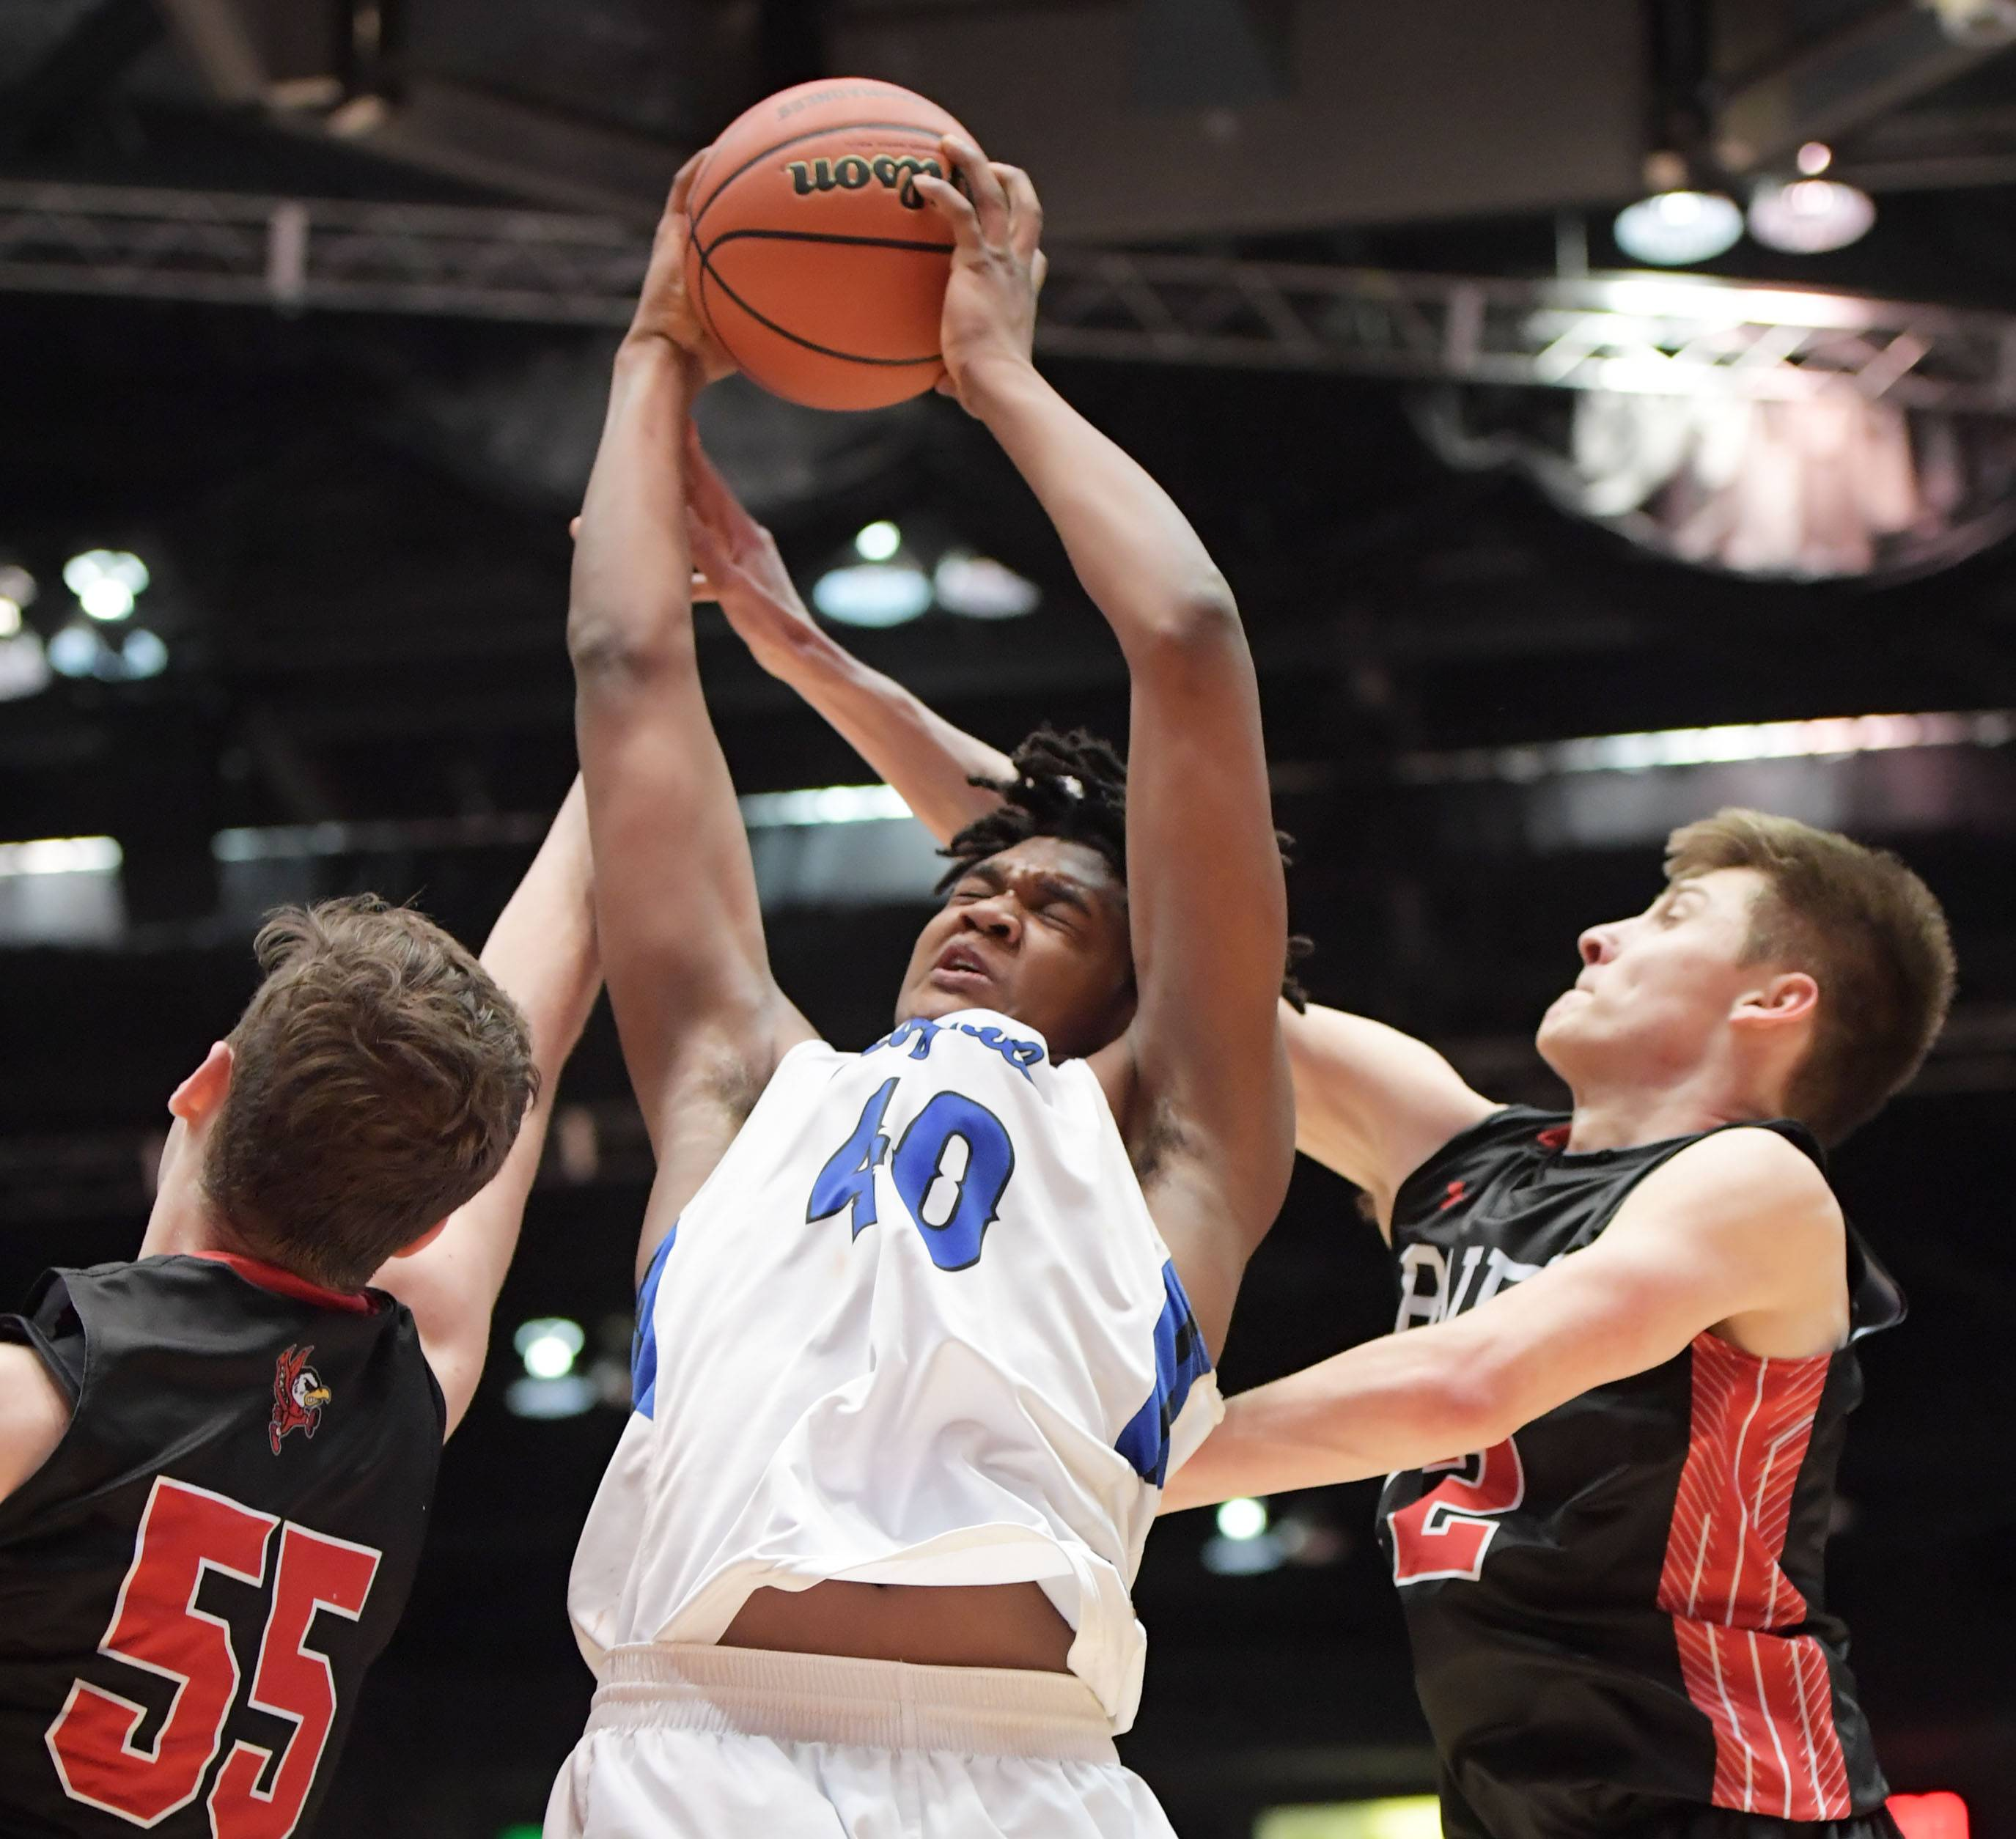 Larkin's Jalen Shaw gets rebound while drawing Benet defenders Colin Crothers and David Buh in Class 4A supersectional play at Northern Illinois University on Tuesday.